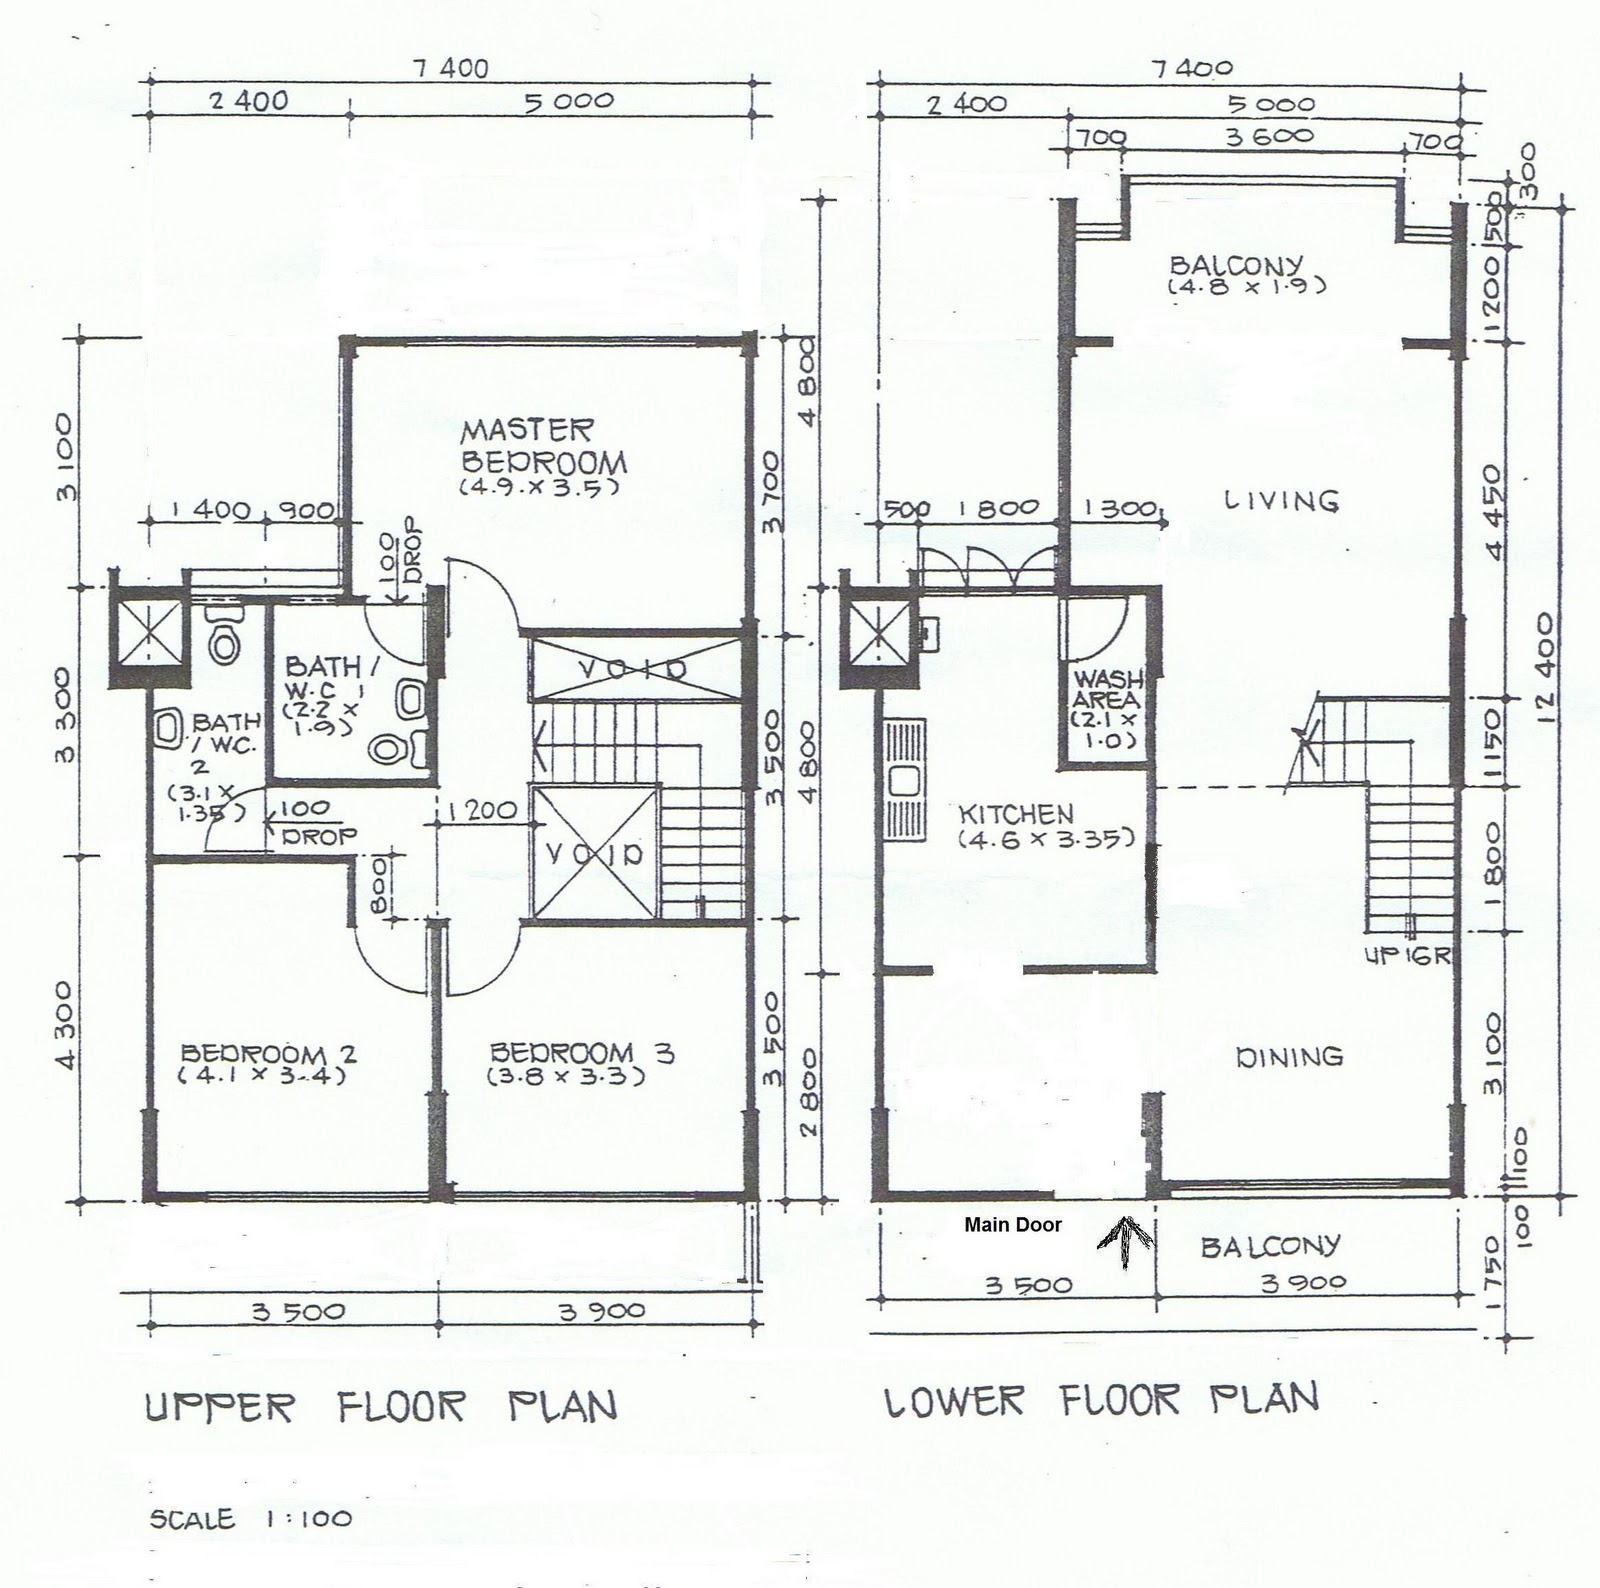 Maisonette House Plans Of Maisonette House Plans Three Bedroom Bungalow House Plan